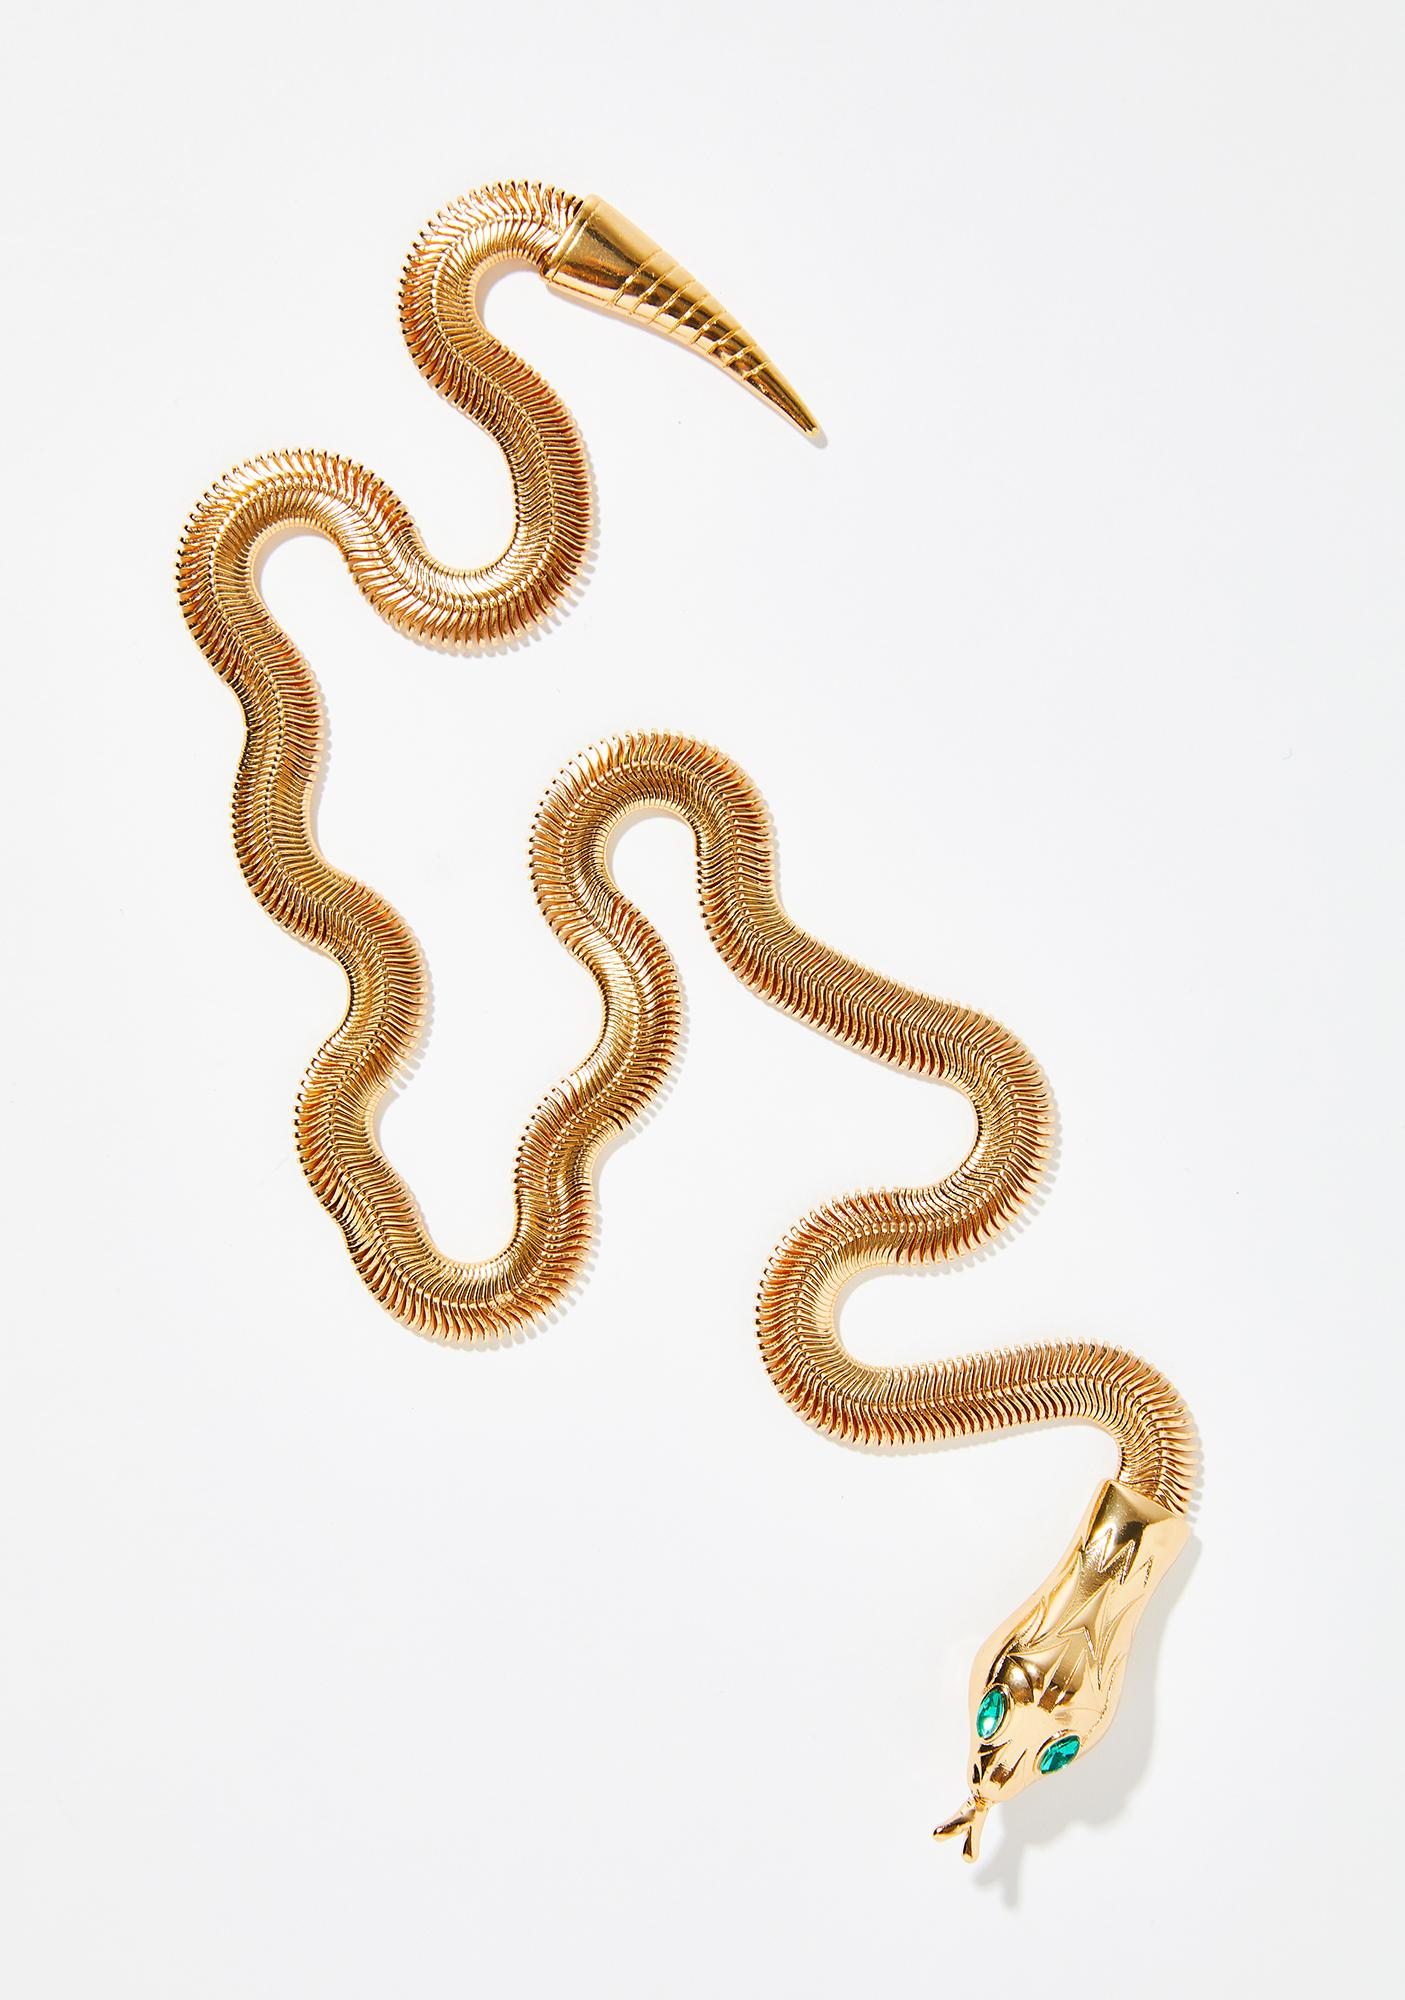 Poison Sting Serpent Tail Necklace